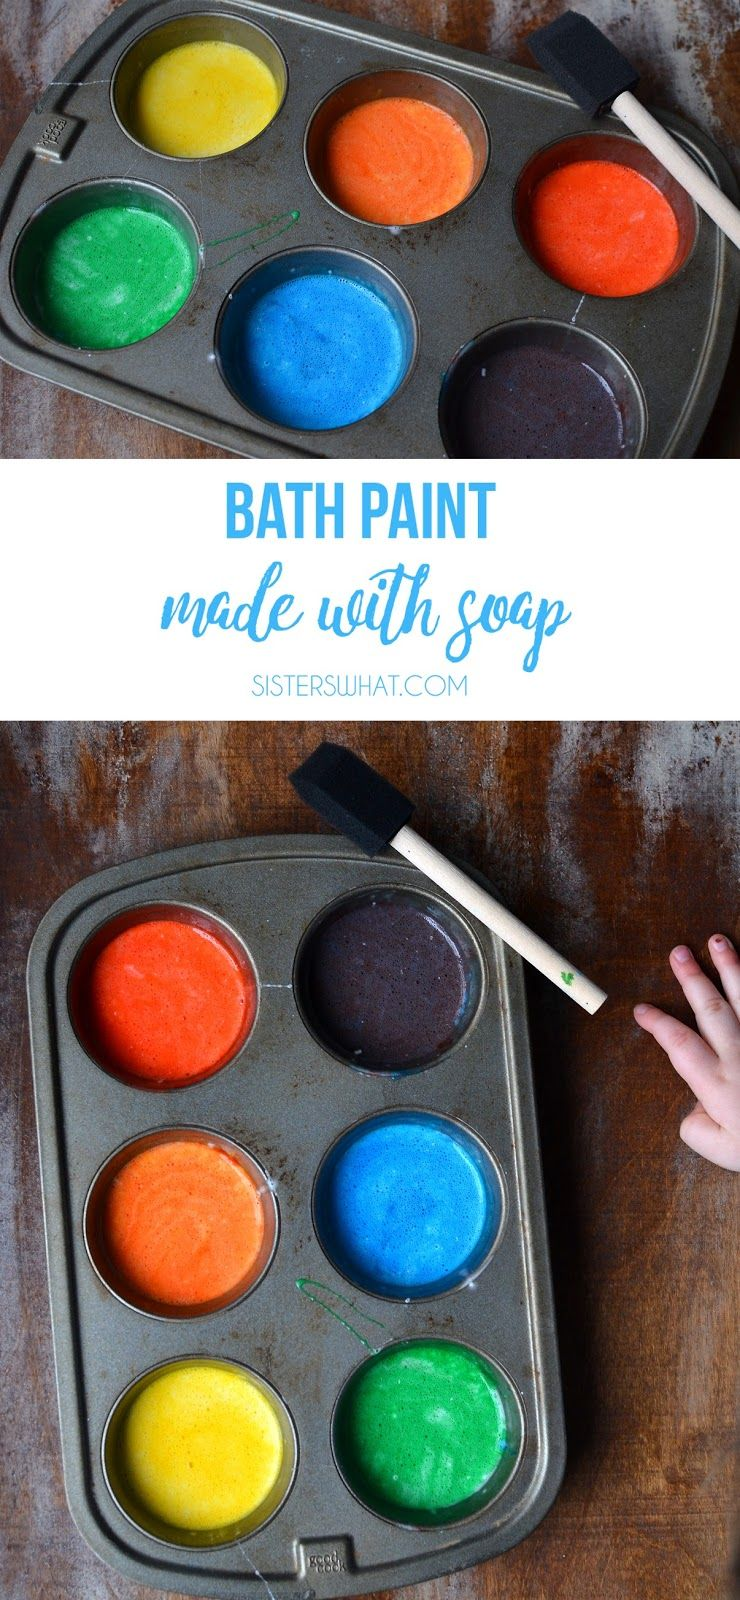 Bath Paint Soap And Cornstarch Rainy Day Activity Diy For Kids Crafts